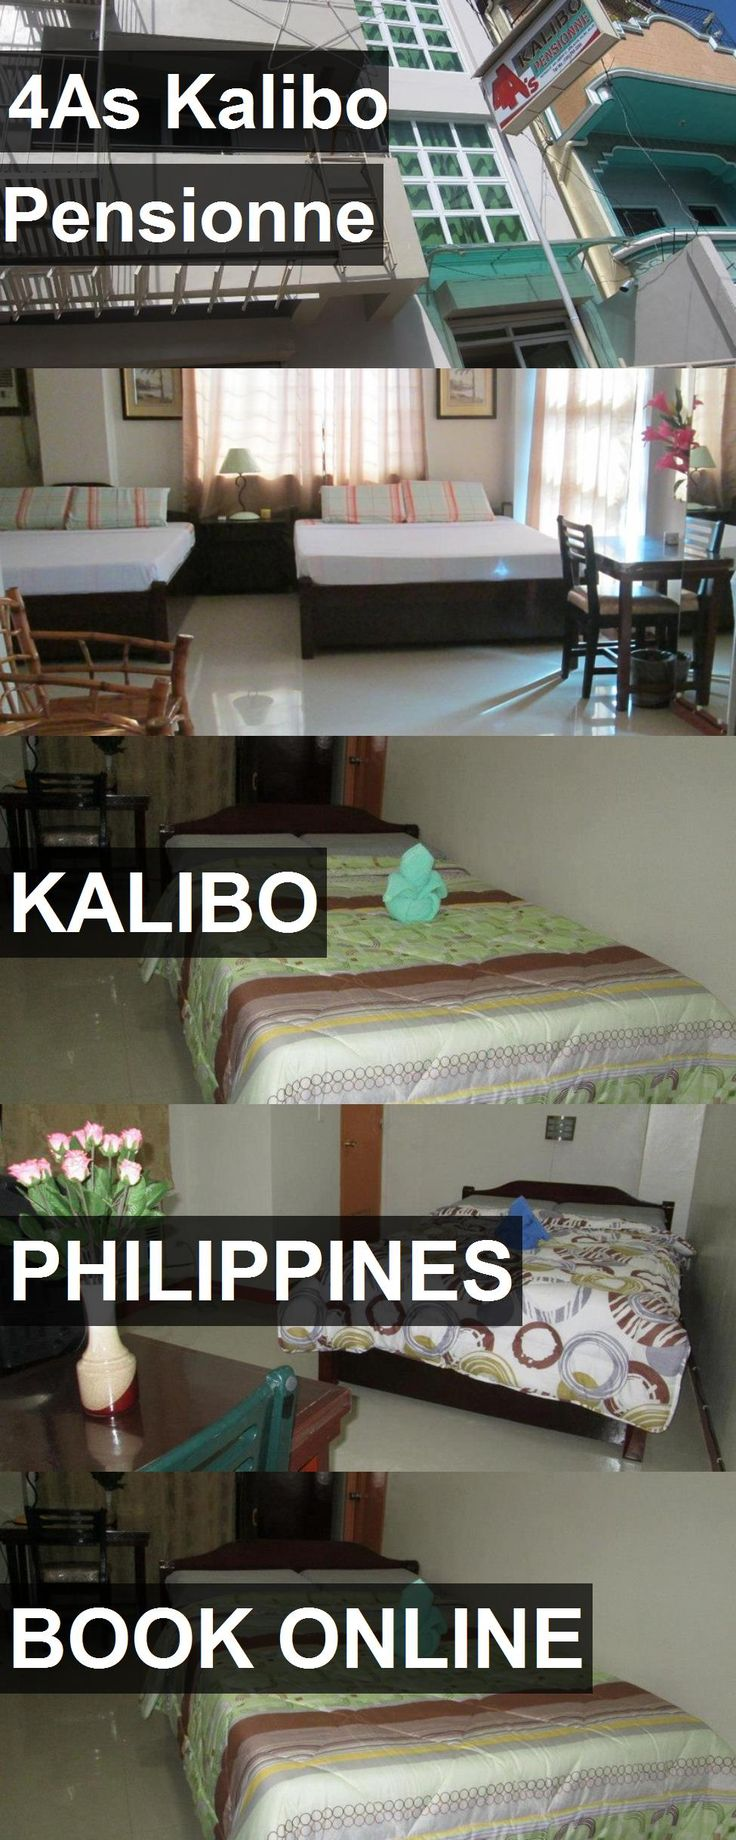 Hotel 4As Kalibo Pensionne in Kalibo, Philippines. For more information, photos, reviews and best prices please follow the link. #Philippines #Kalibo #travel #vacation #hotel